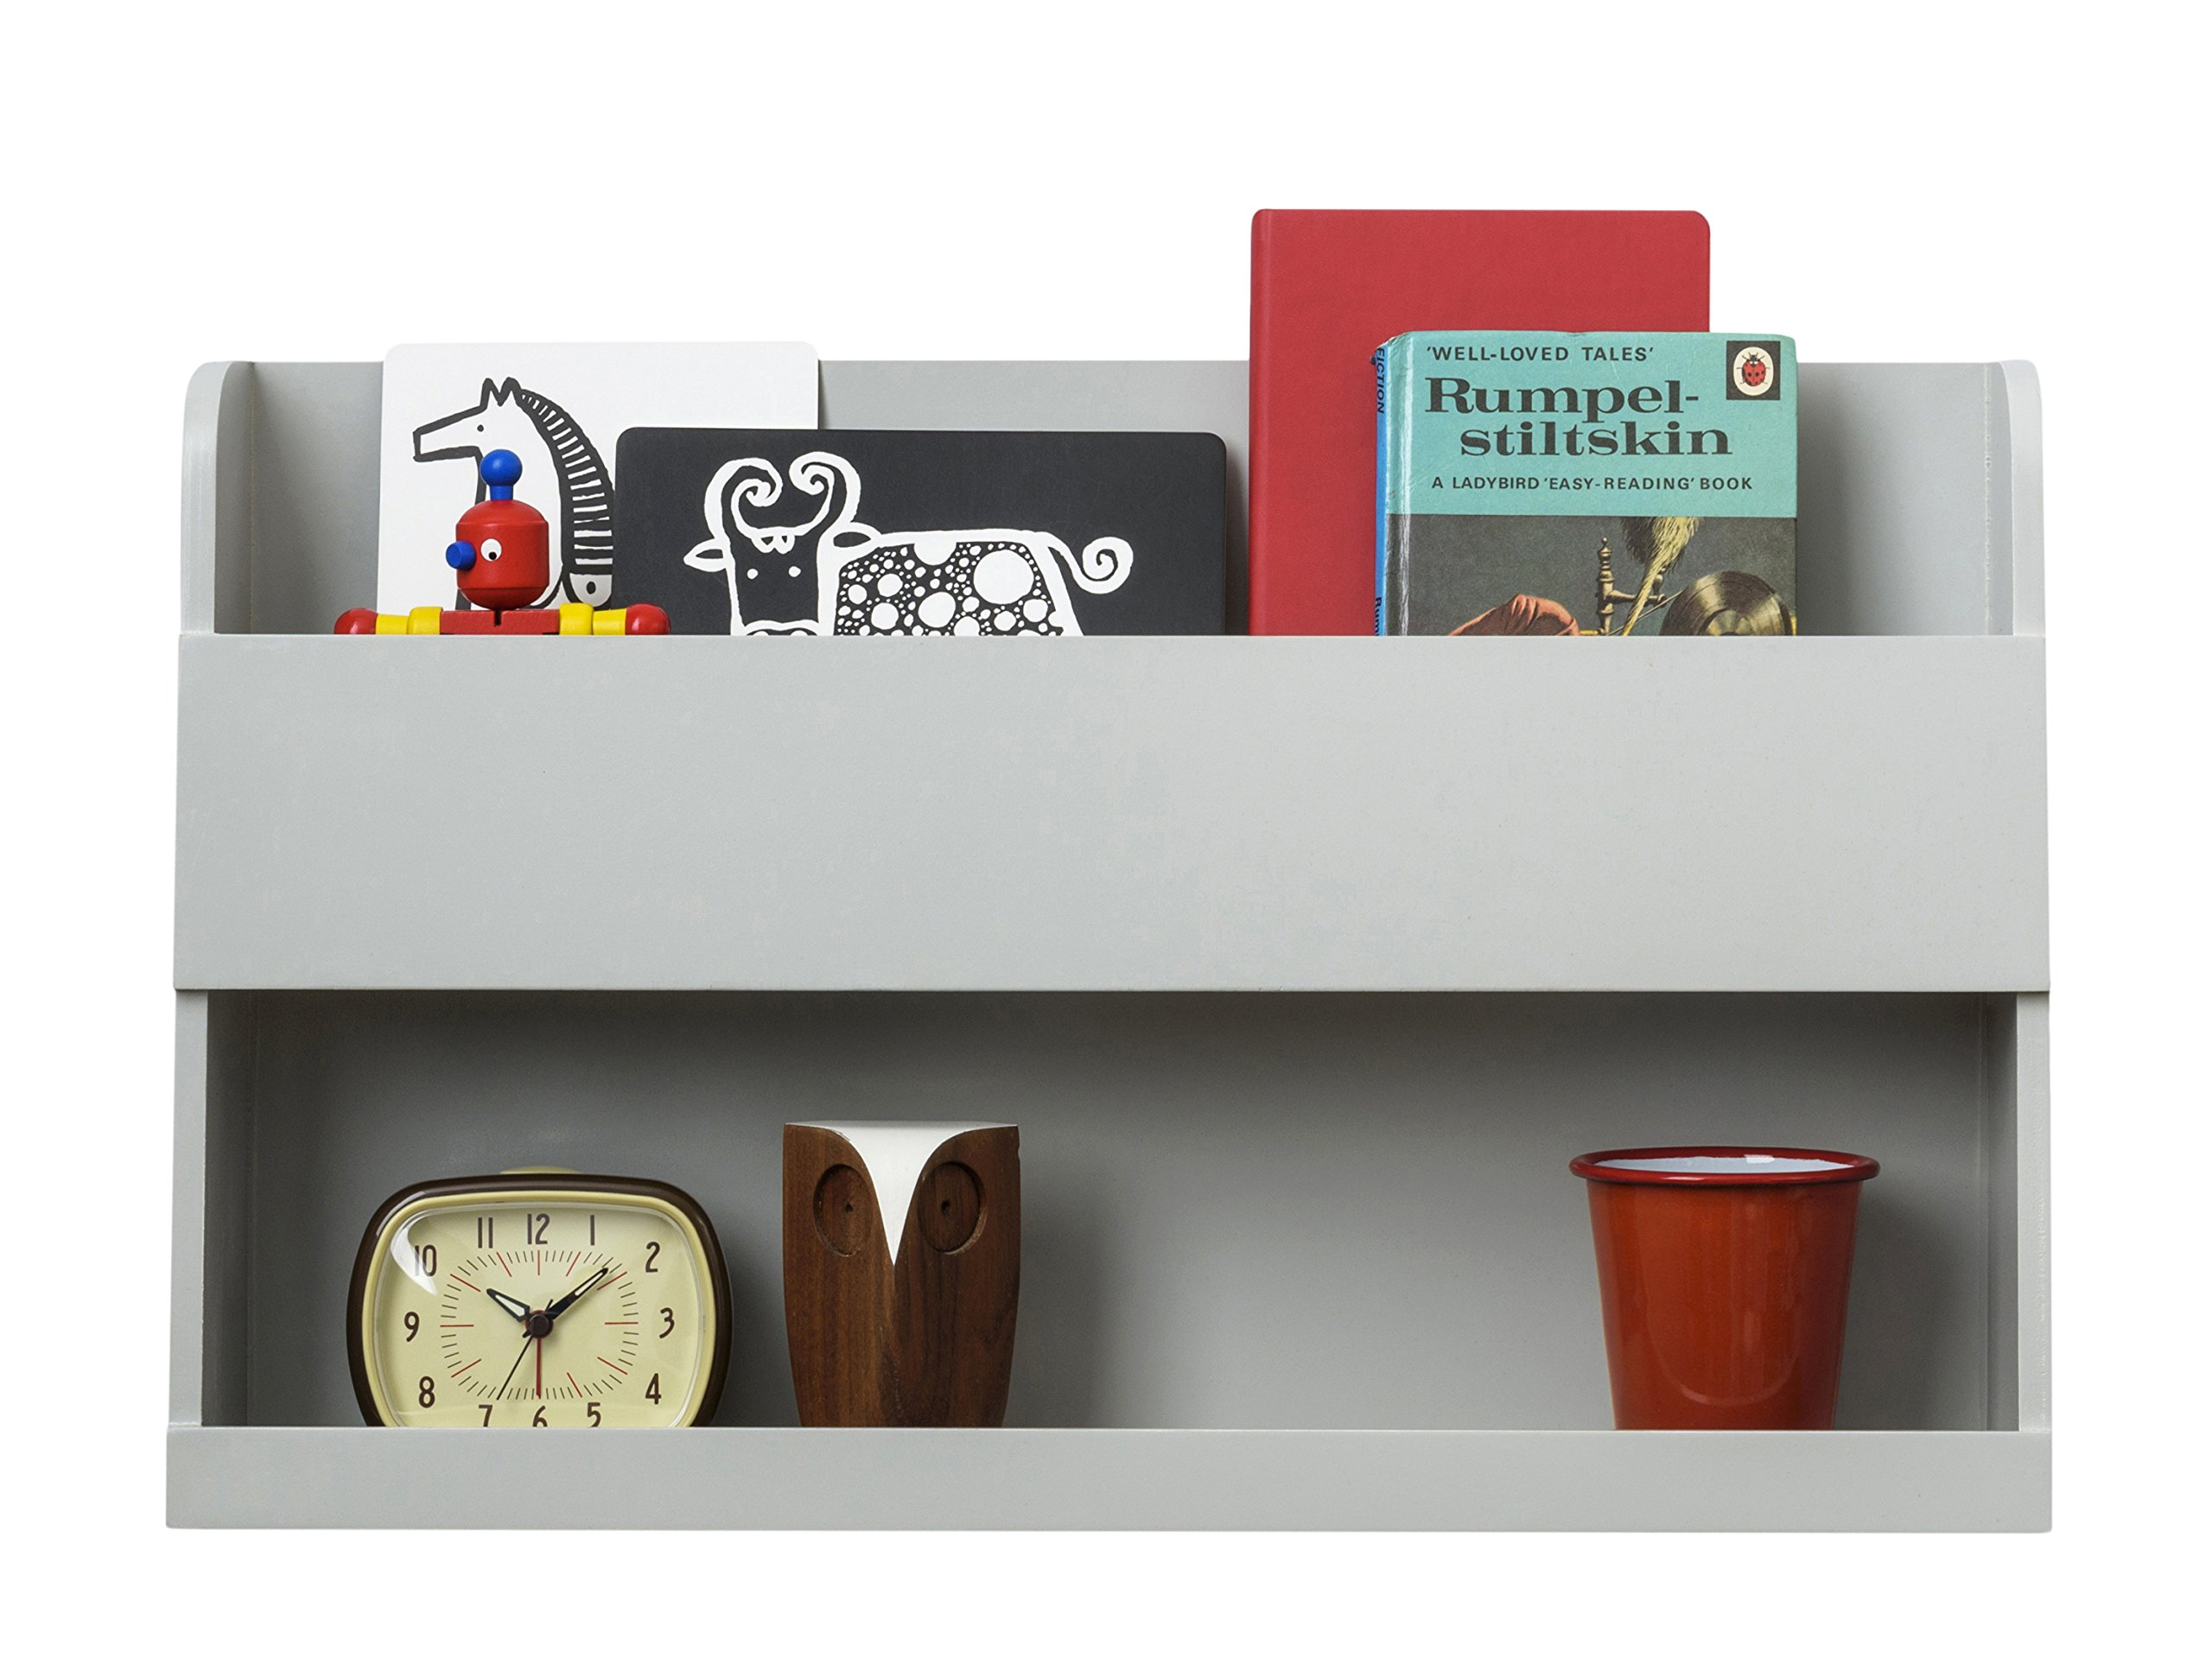 Tidy Books -The Original Bunk Bed Buddy- Bunk Bed Shelf in Pale Grey - Wall Shelf for Bedside Table Next to Bunk Beds and Cabin Beds - 13 x 20.9 x 4.7 in